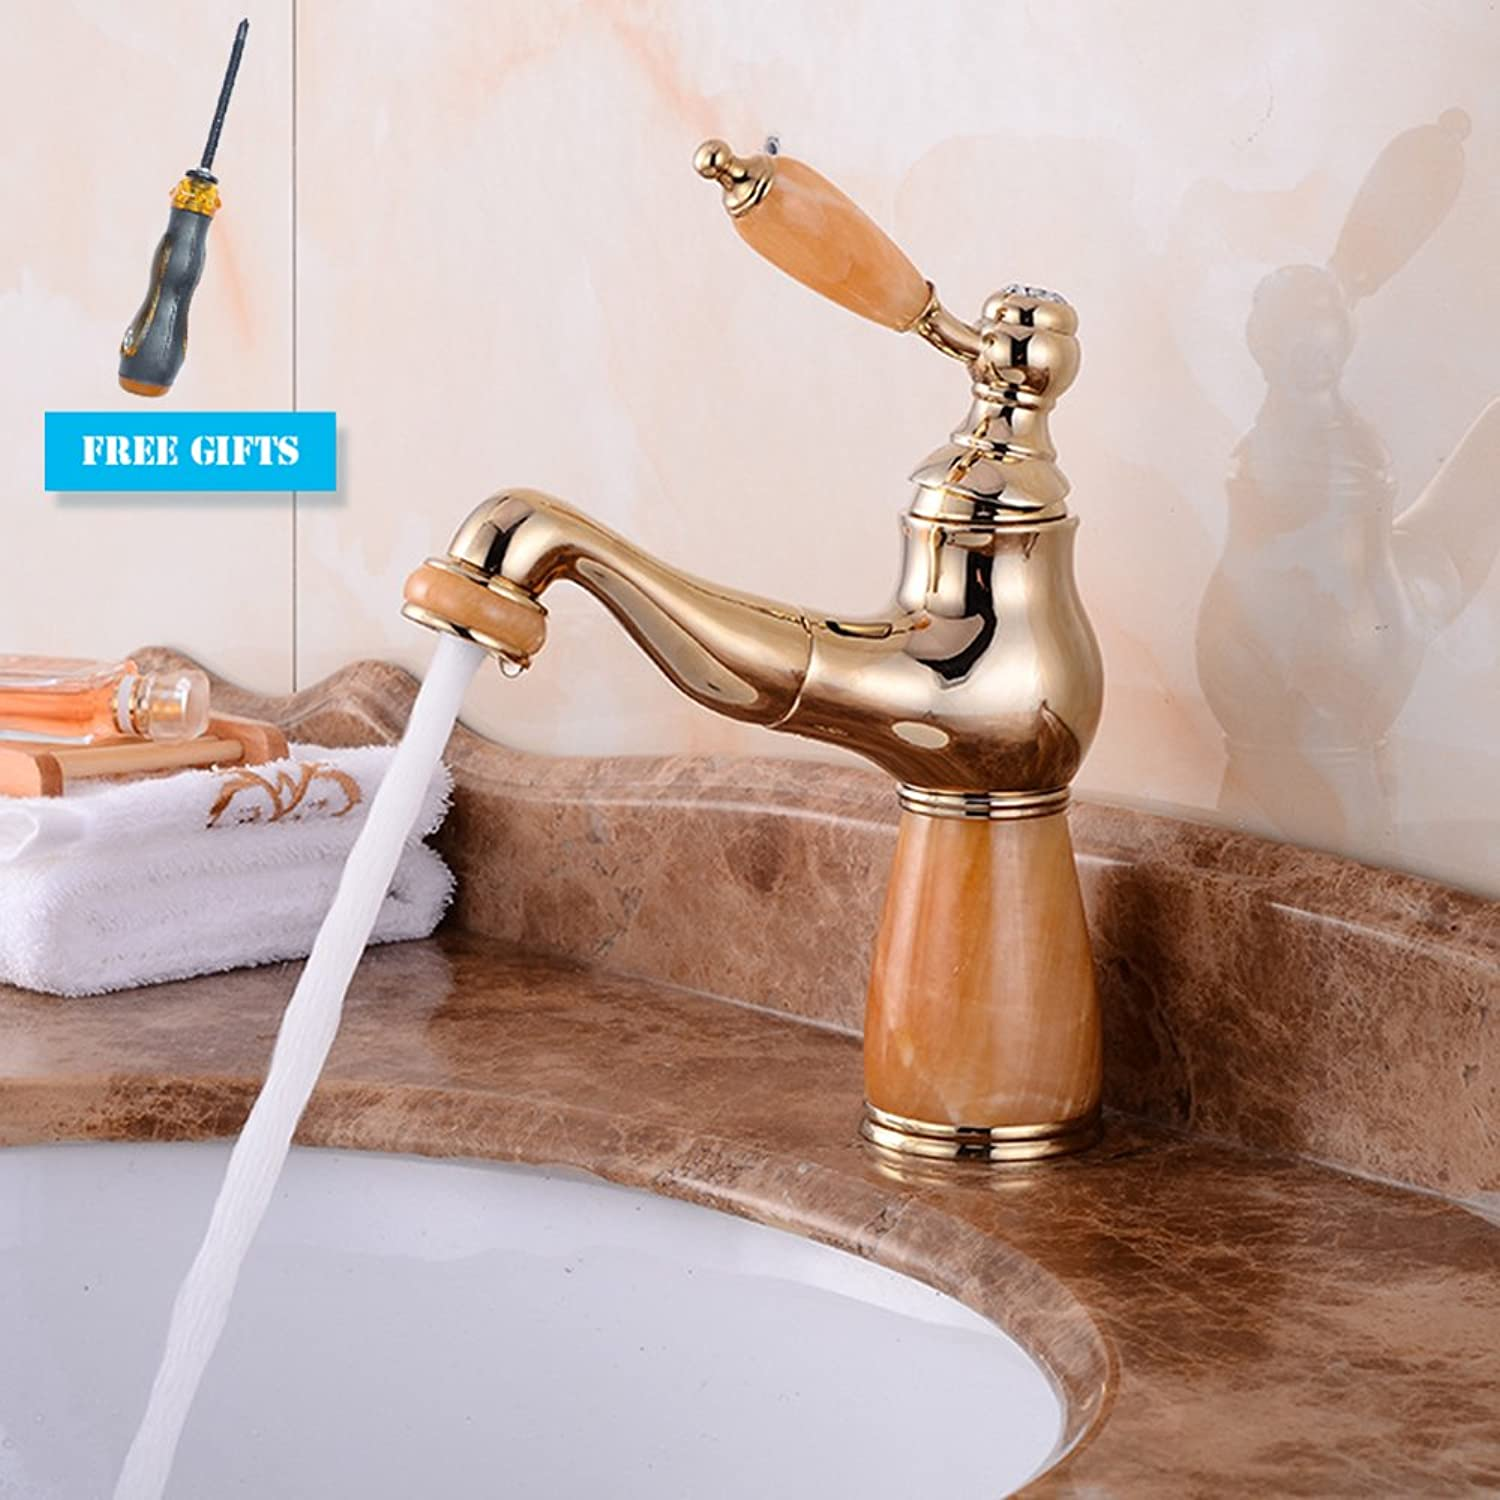 GAOLI Brass gold Basin Natural Jade Faucet Hot And Cold Water Telescopic Pull-Out Faucet, Mixing Faucet, In-Wall Shower Faucet, Basin Faucet, Bathroom Sink Faucet